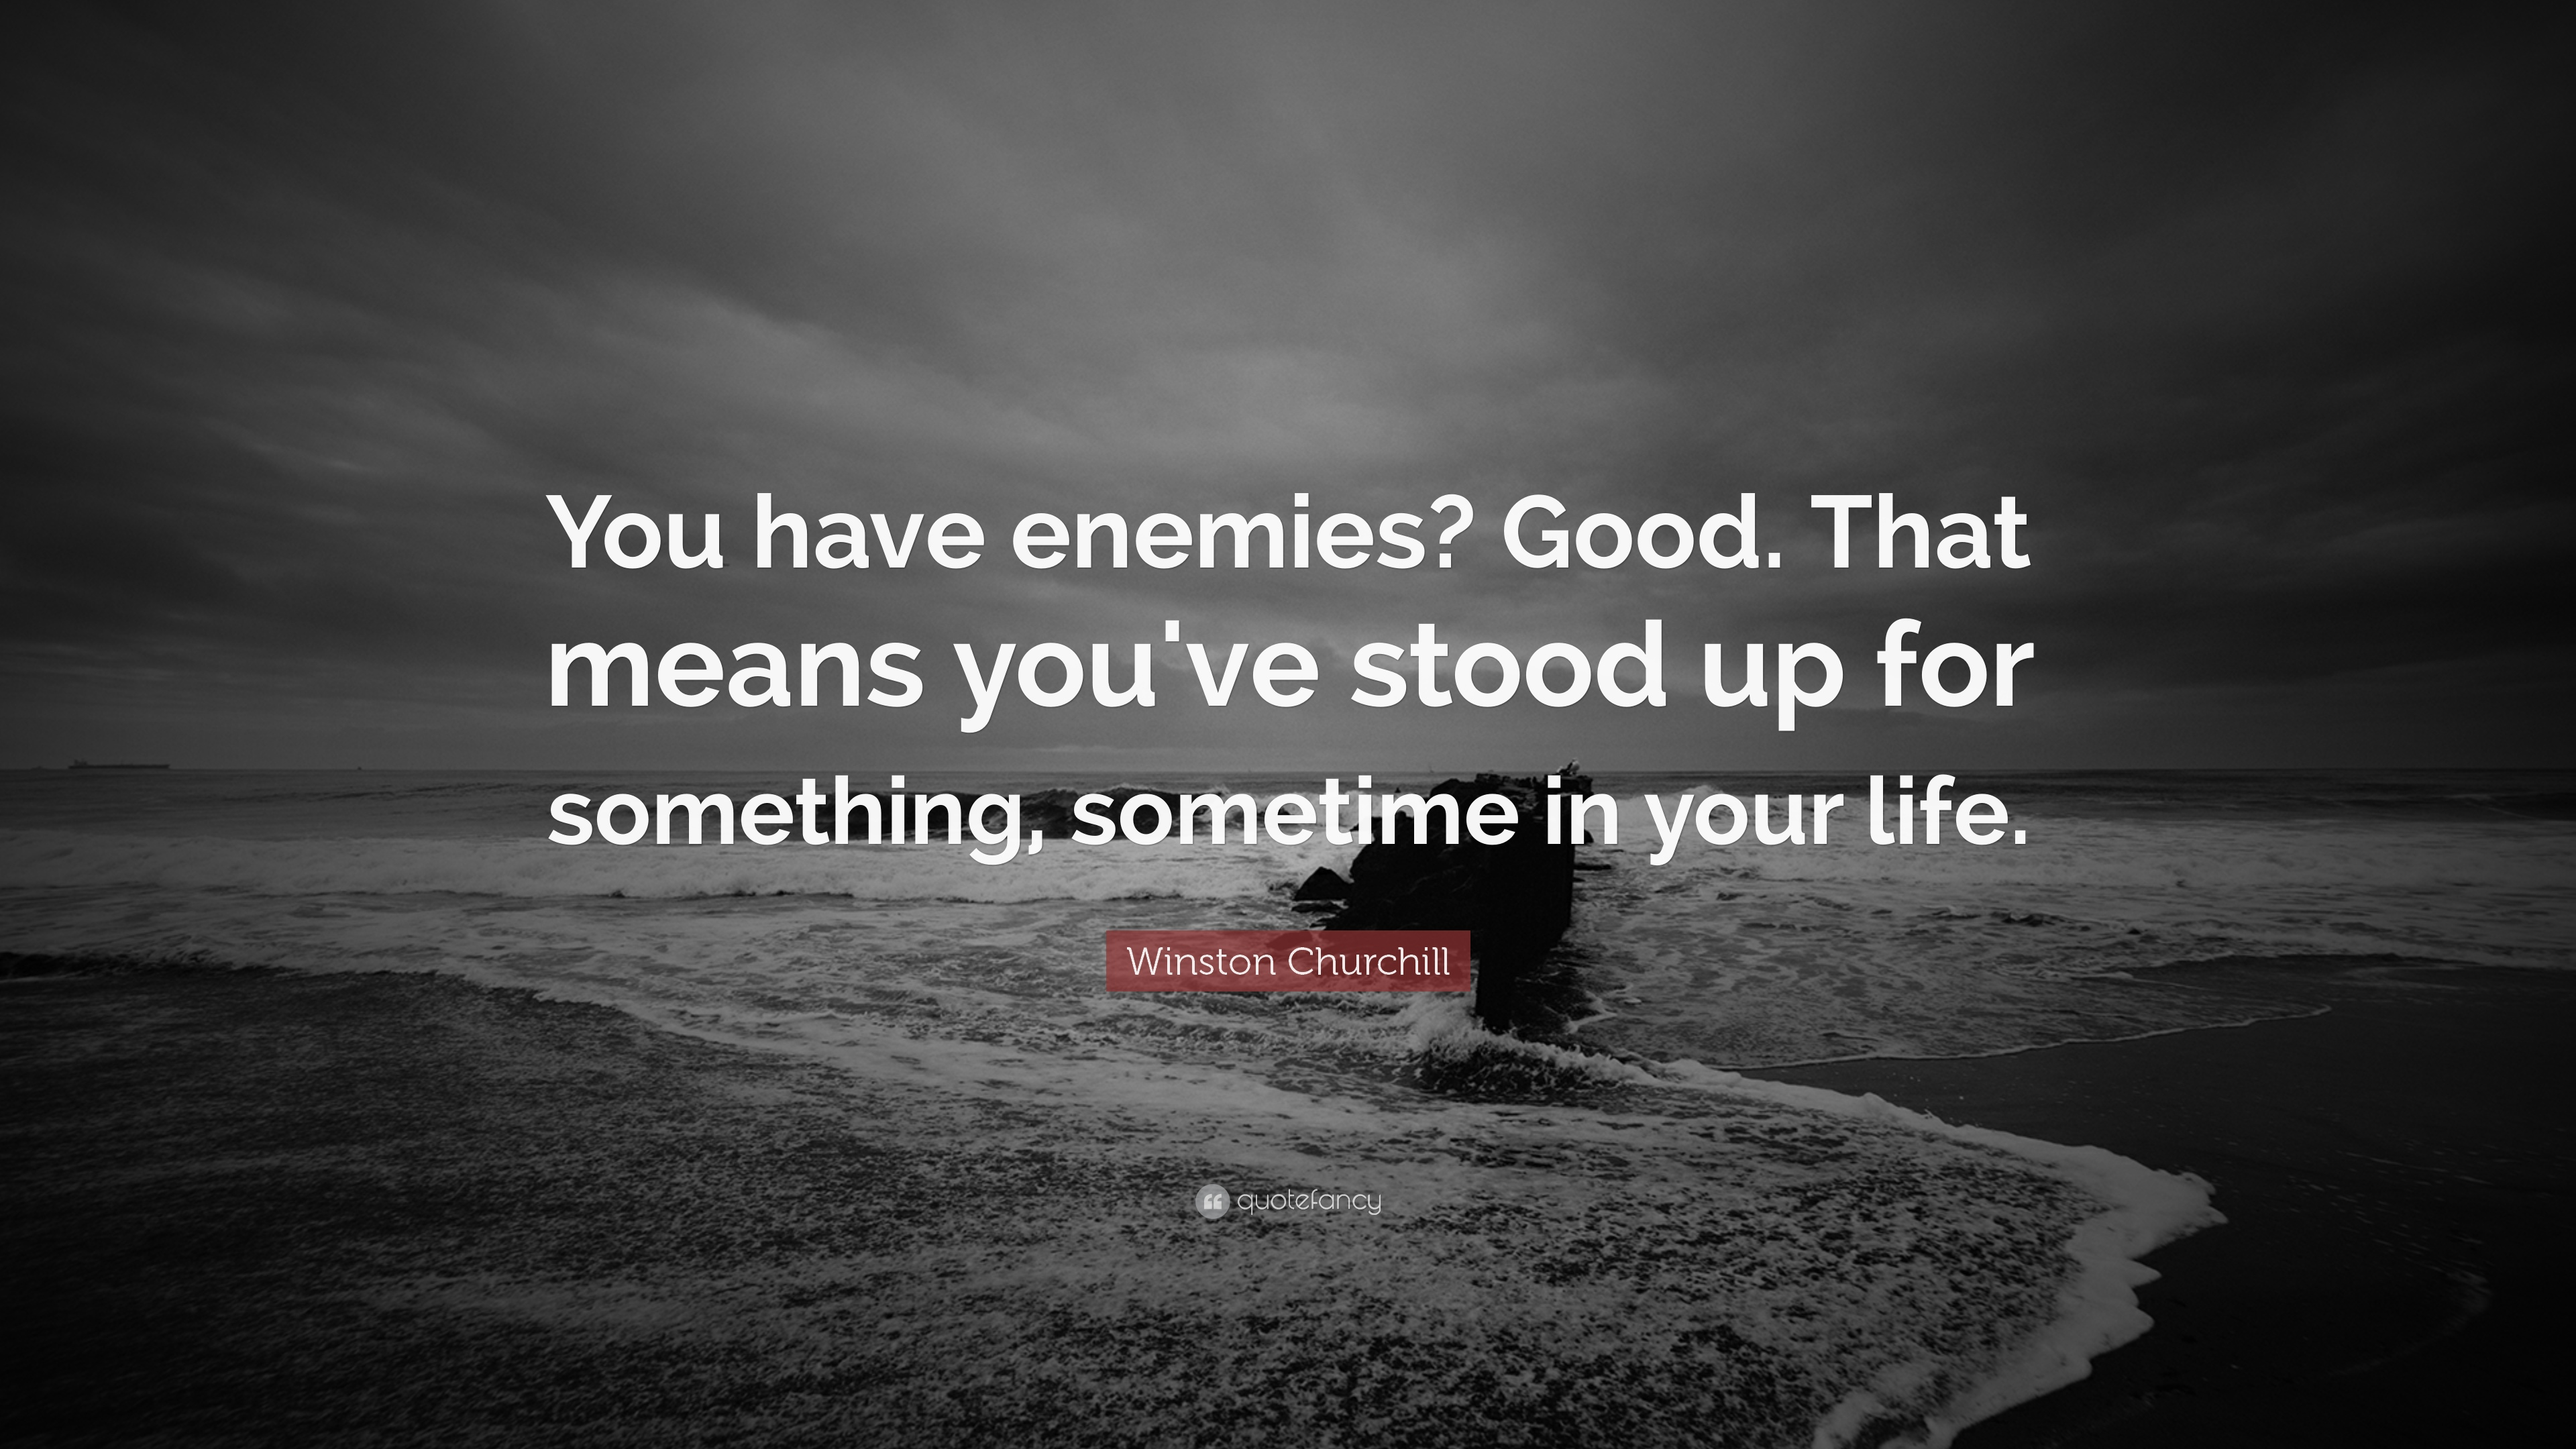 Merveilleux Winston Churchill Quote: U201cYou Have Enemies? Good. That Means Youu0027ve